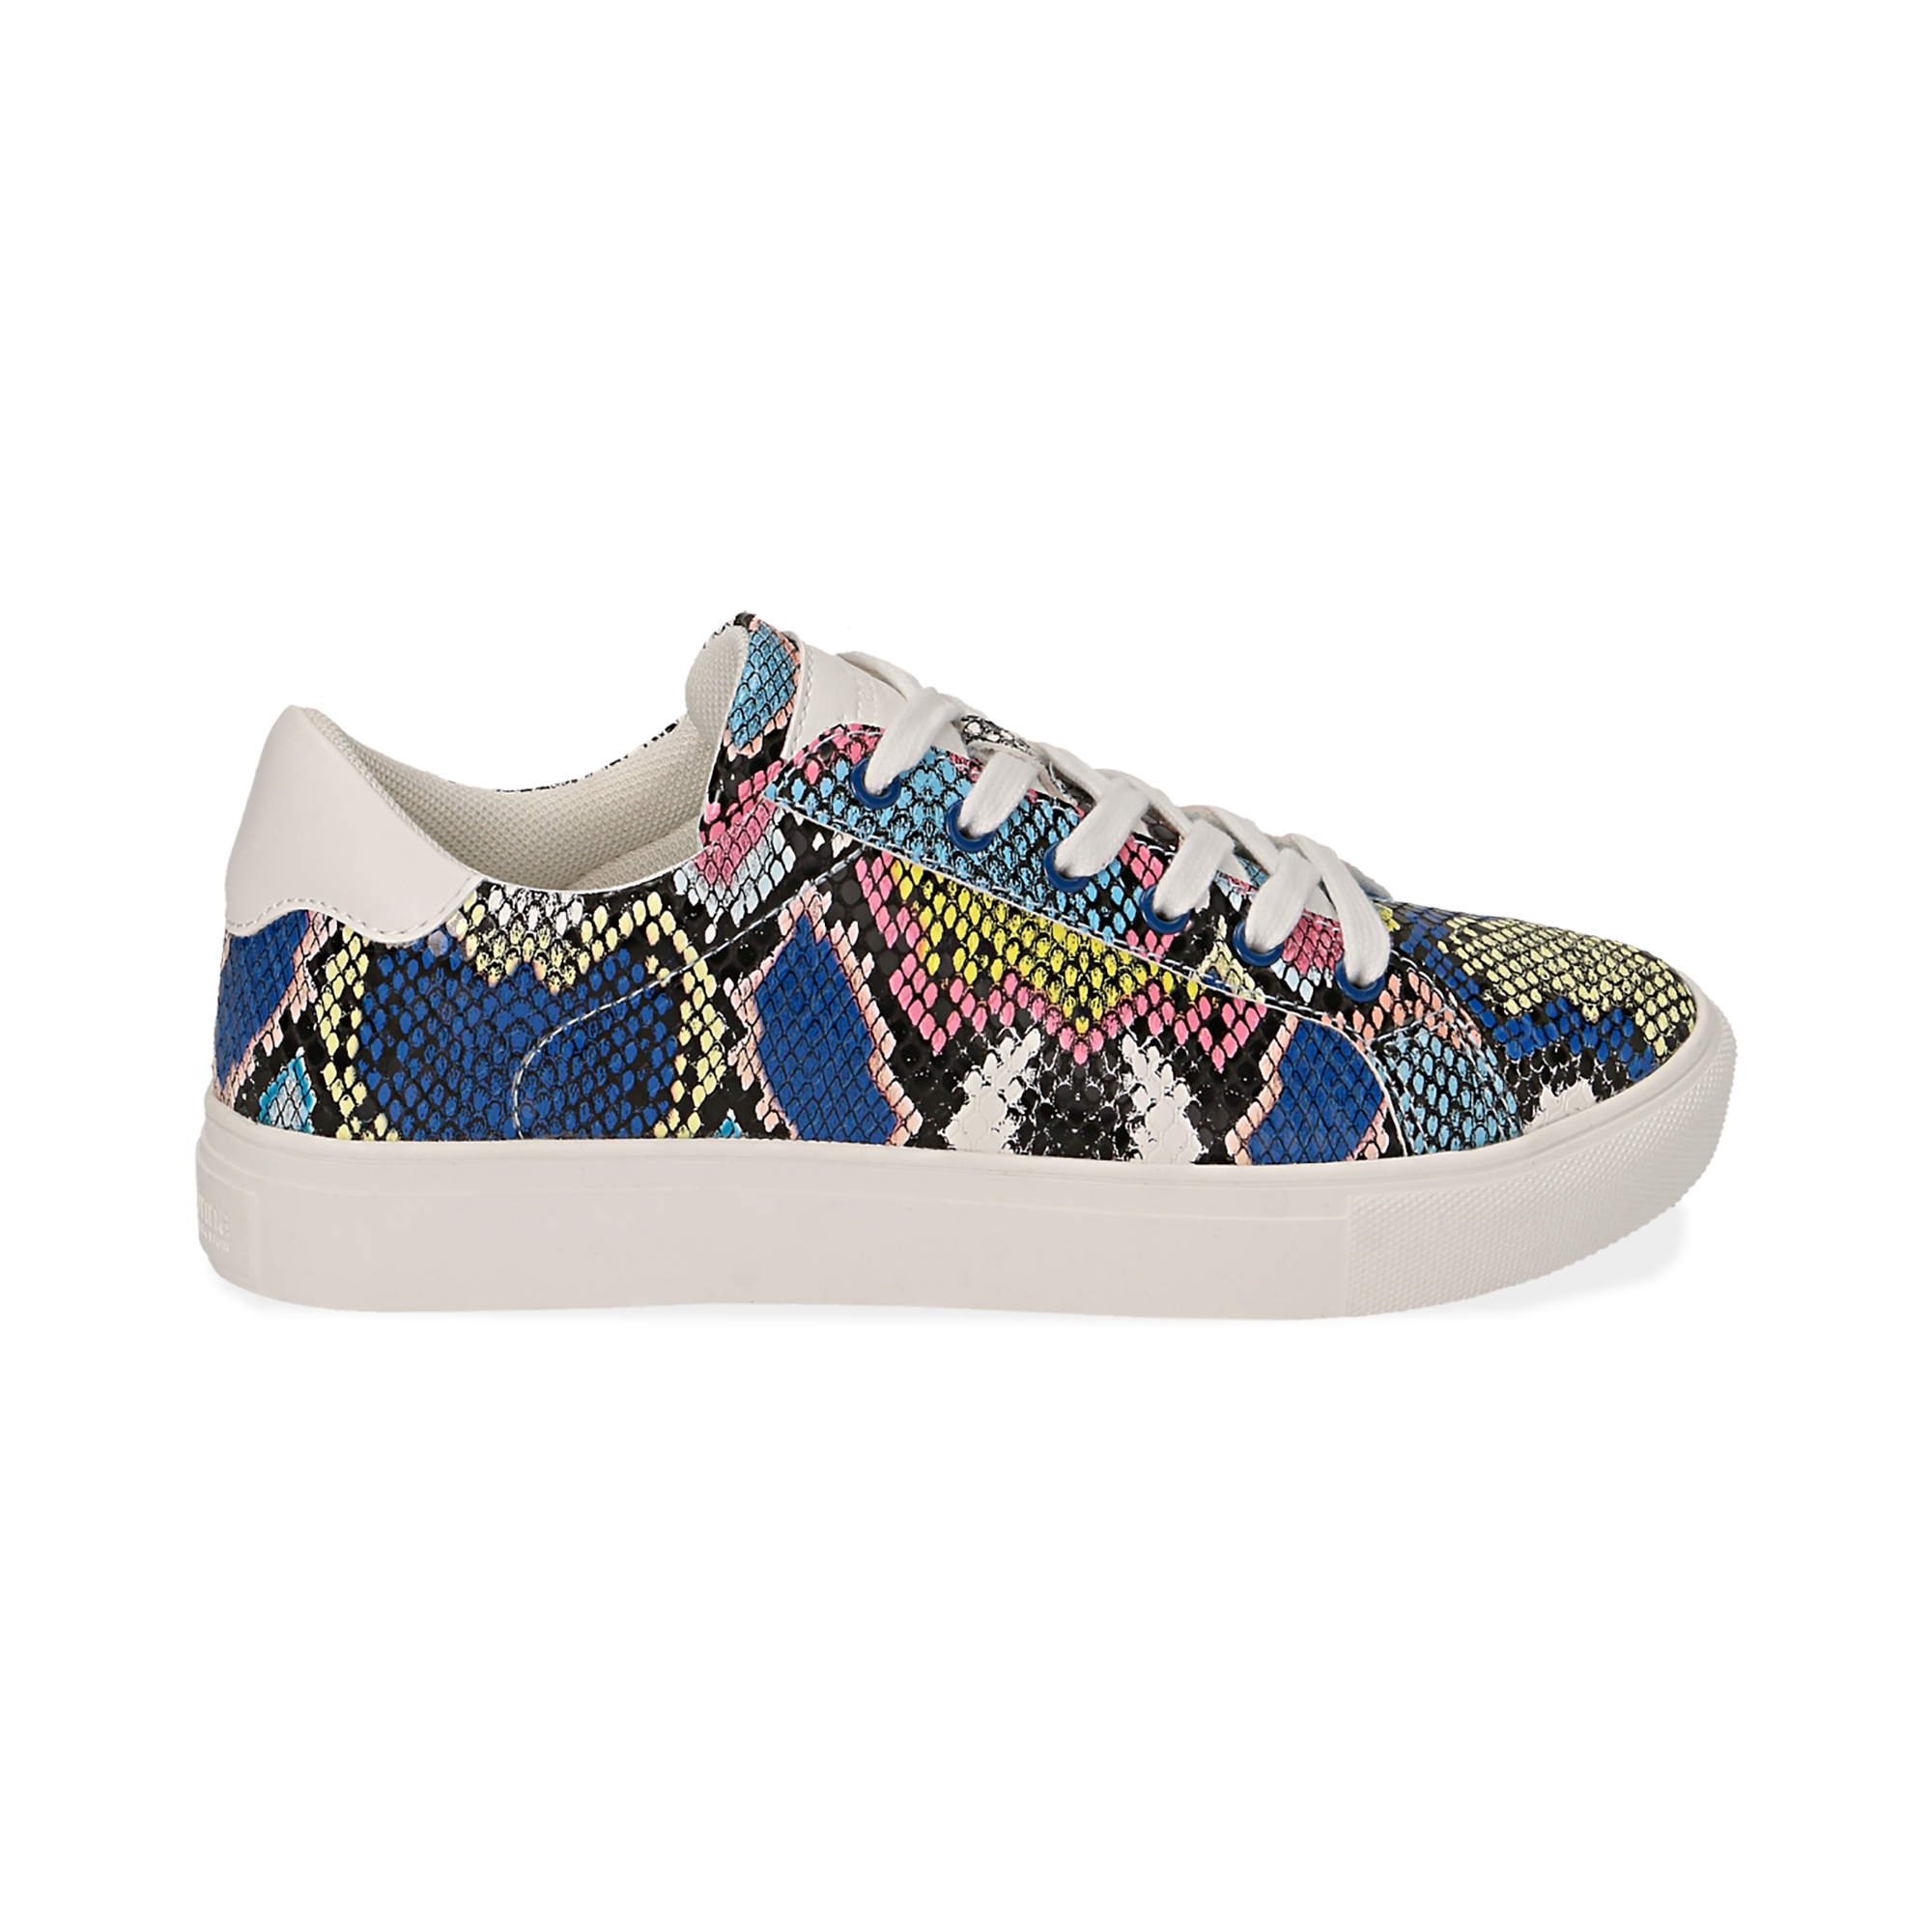 Sneakers en ecopiel con estampado de serpiente color negro/azul